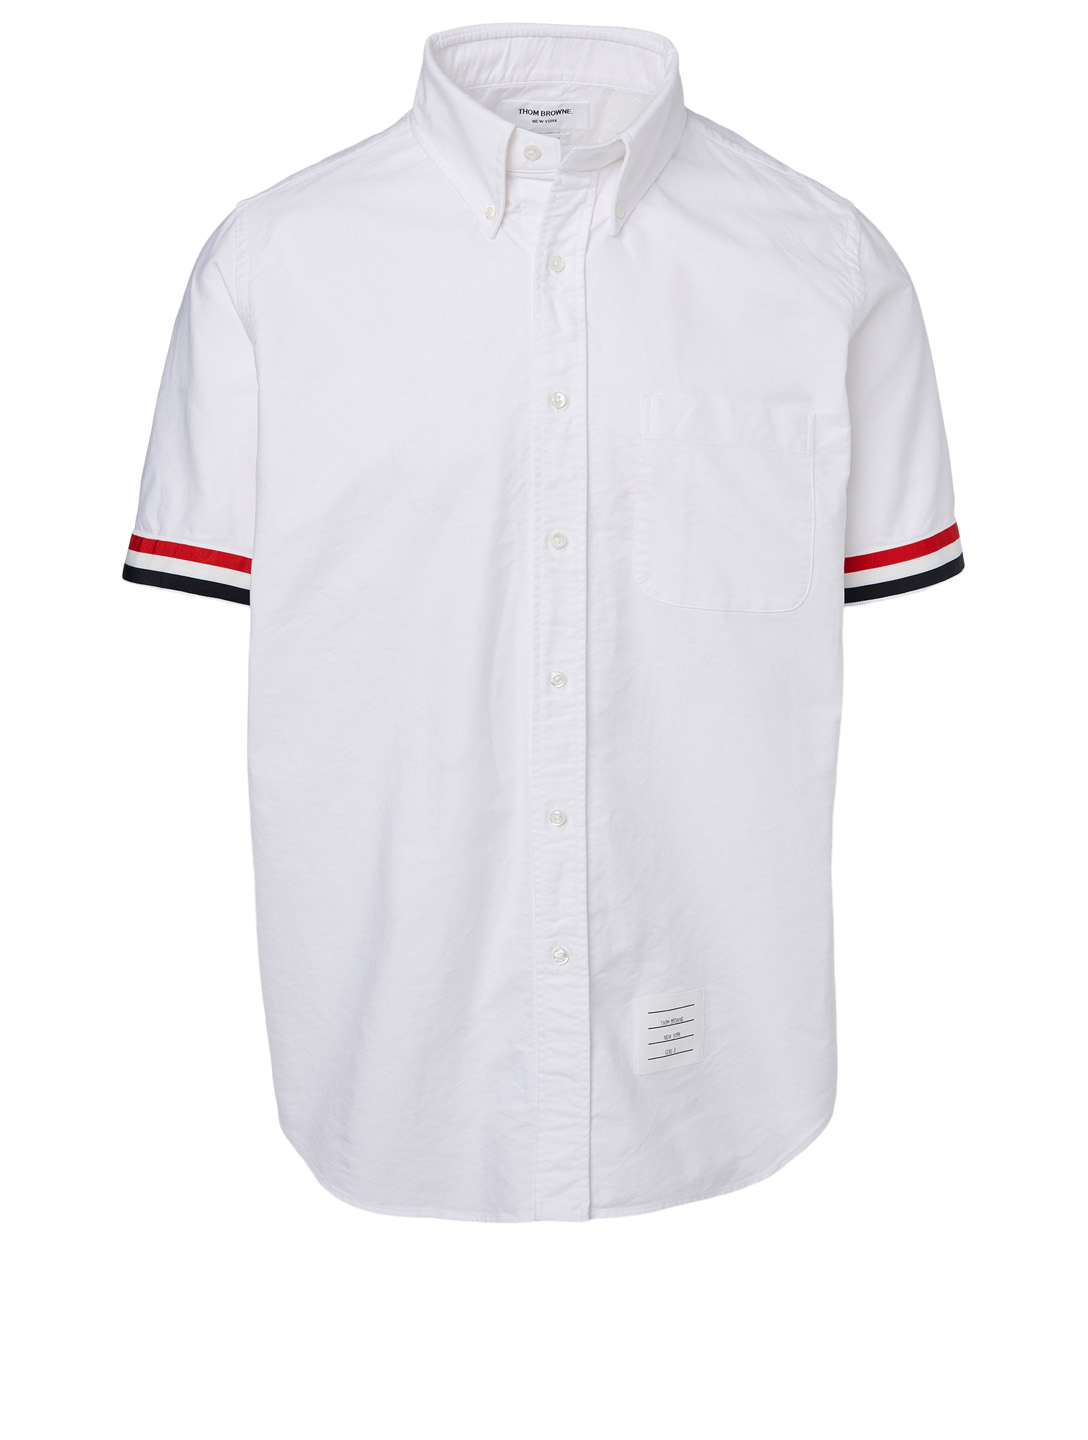 THOM BROWNE Button-Down Short-Sleeve Shirt With Grosgrain Cuffs Men's White